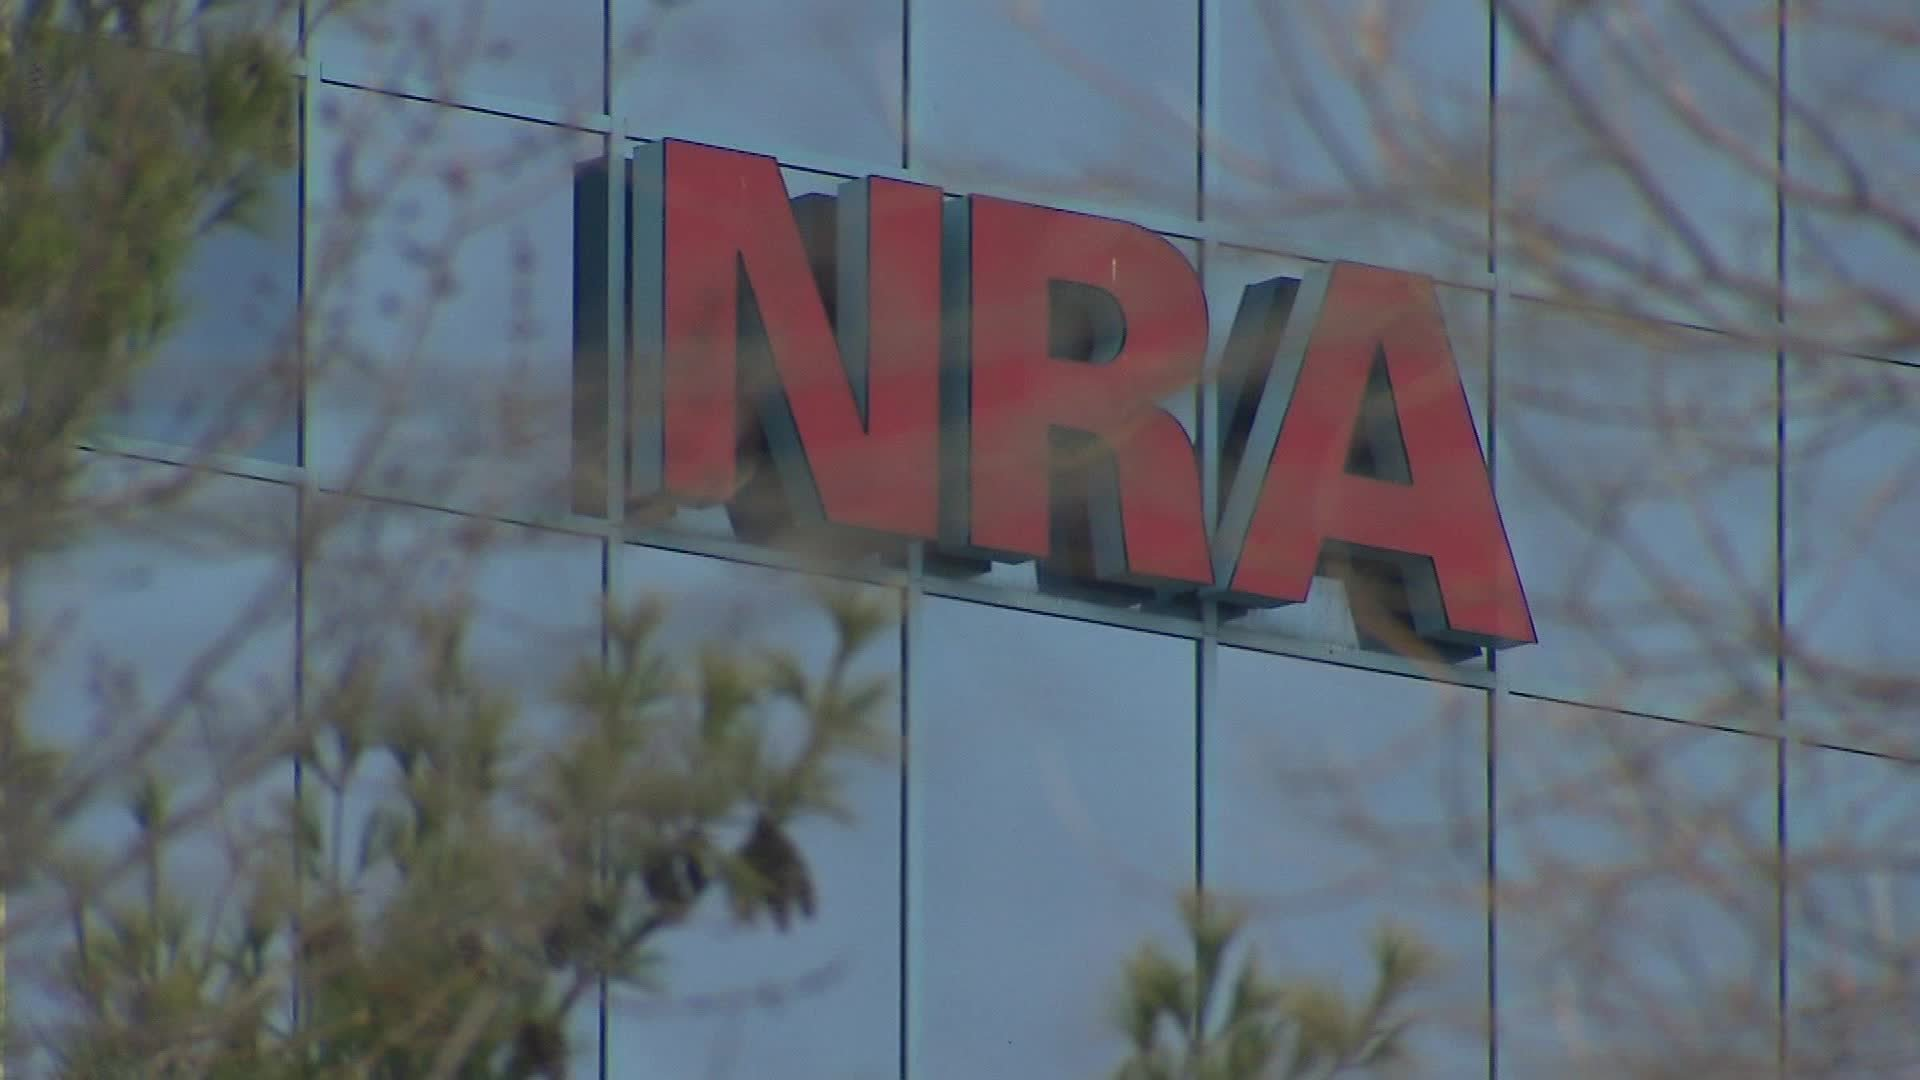 Another NRA official leaves organization amid turmoil